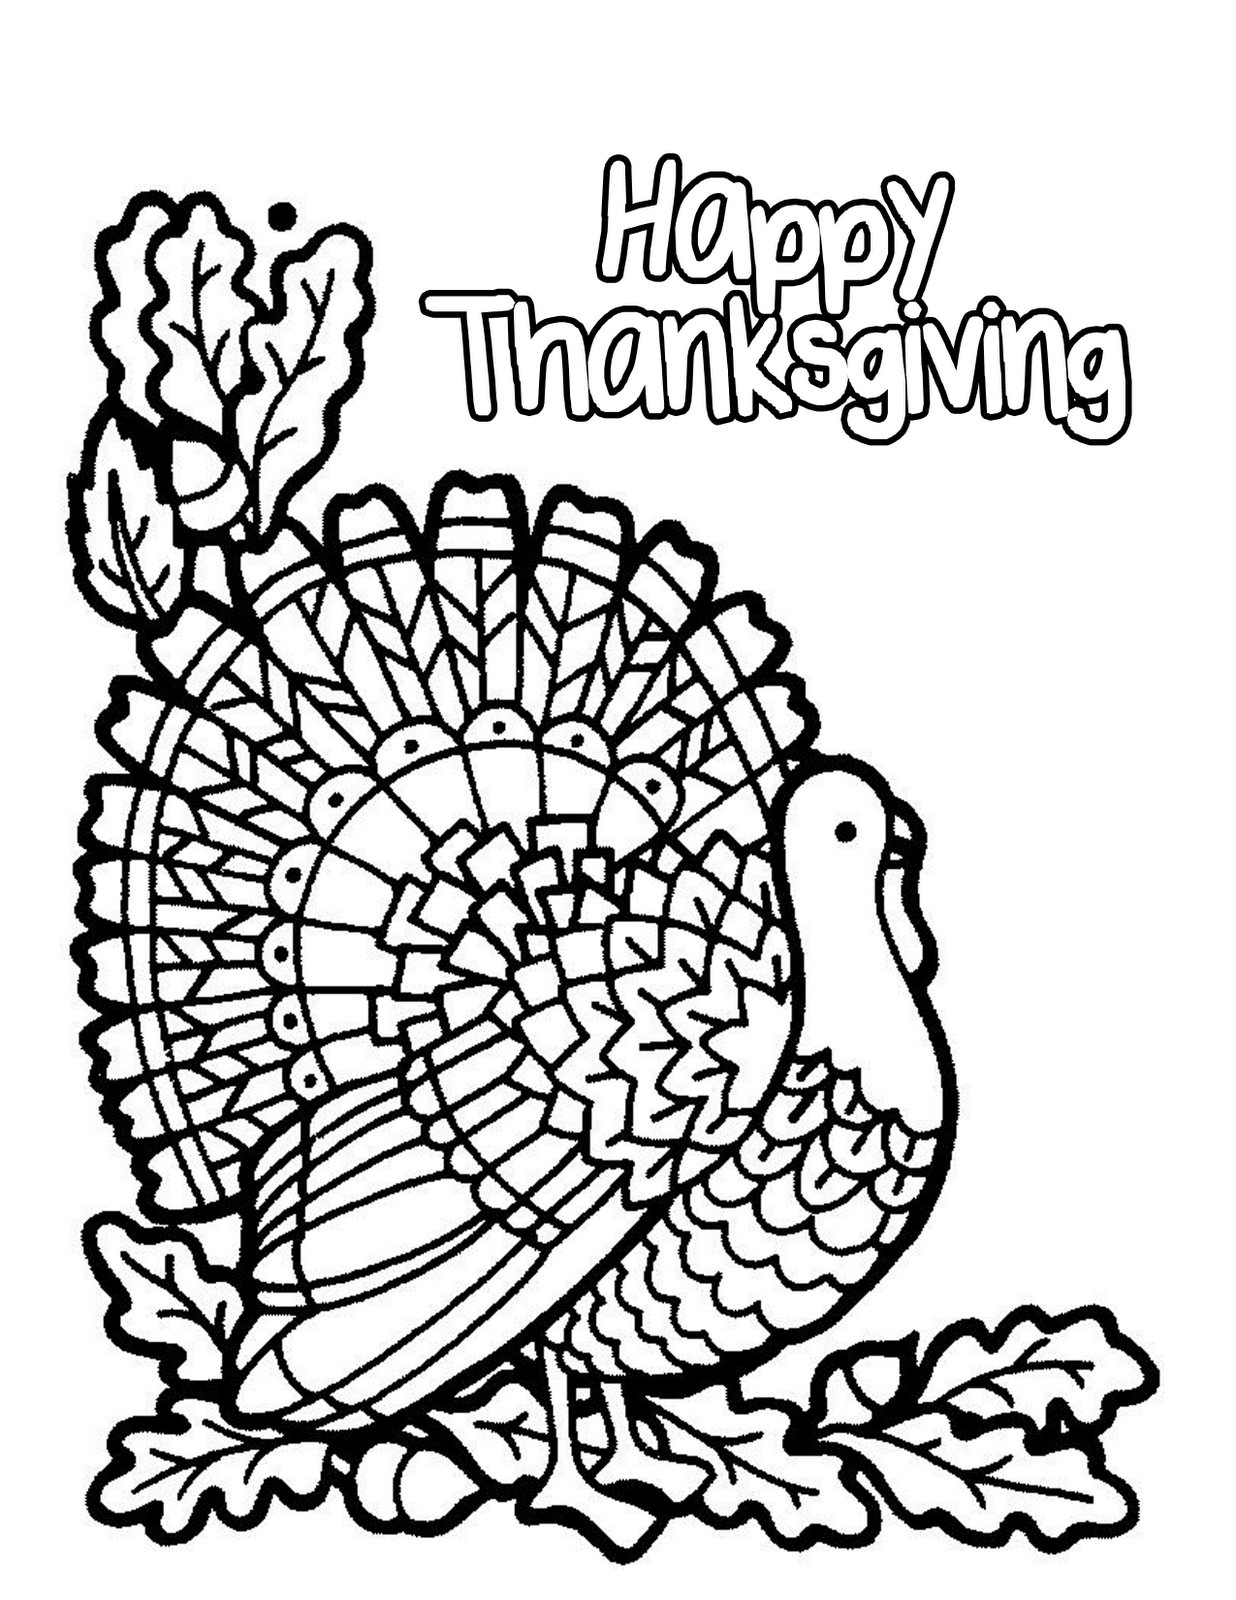 coloring book for thanksgiving free thanksgiving coloring pages for adults kids book for coloring thanksgiving